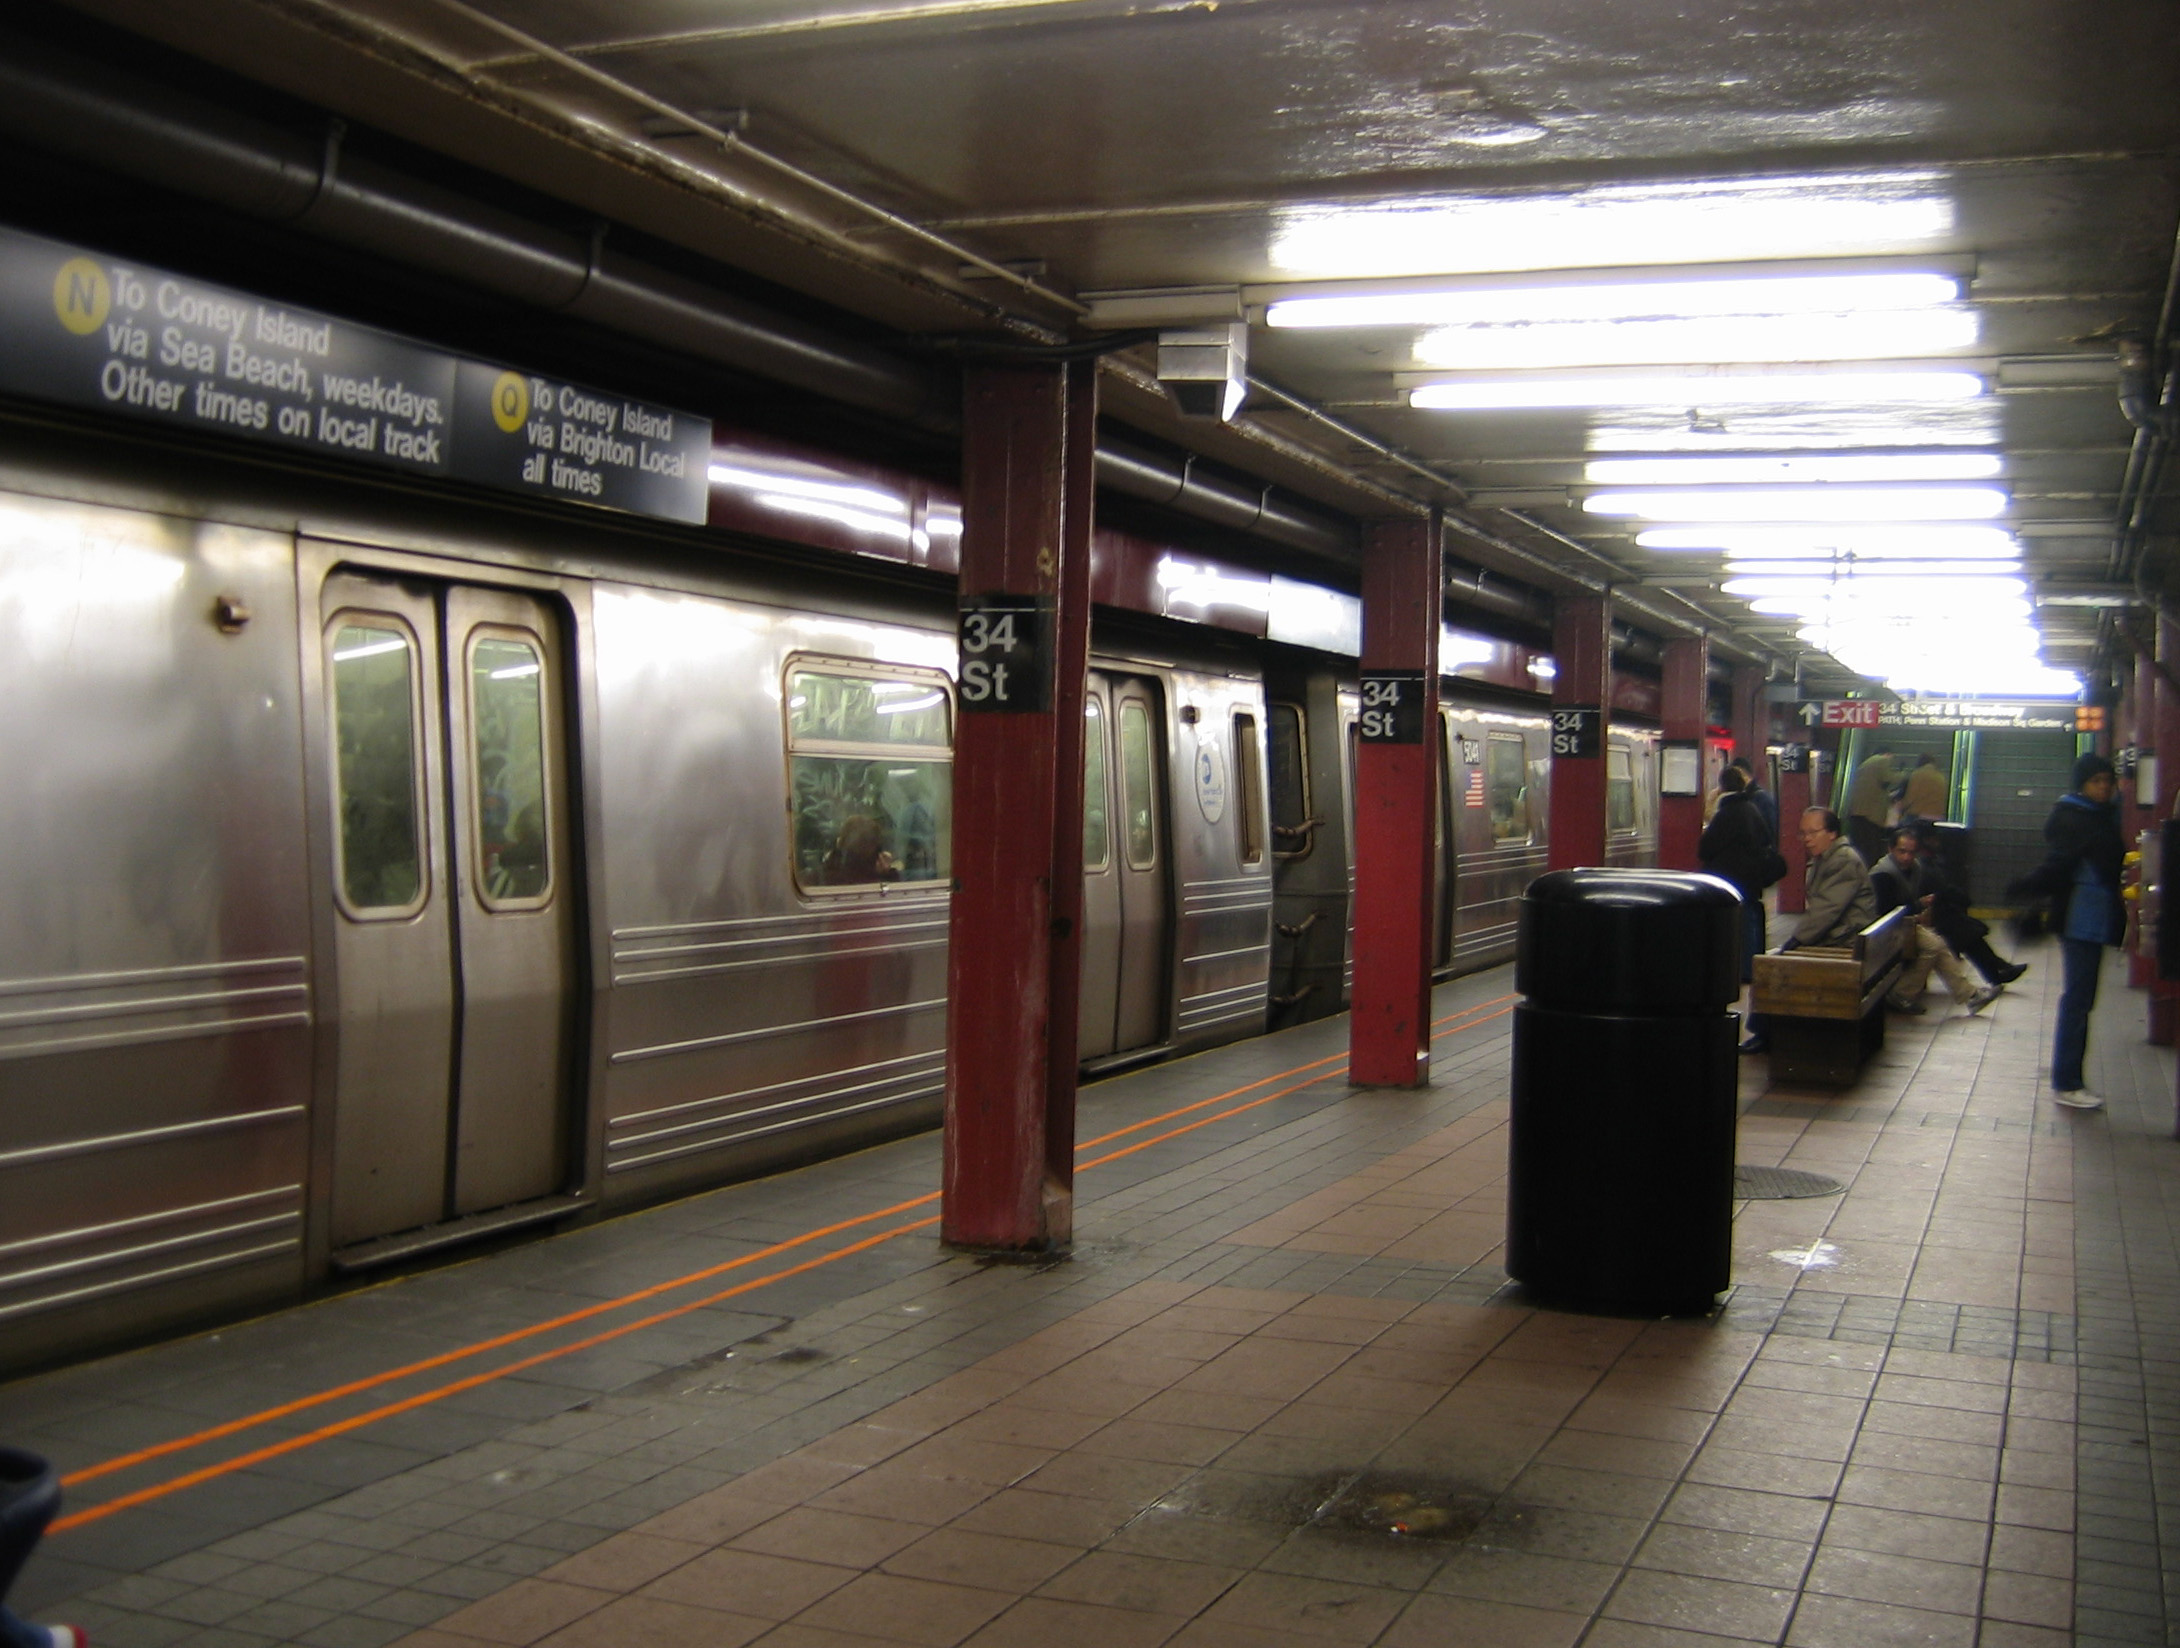 file:nyc subway 34st station - wikimedia commons